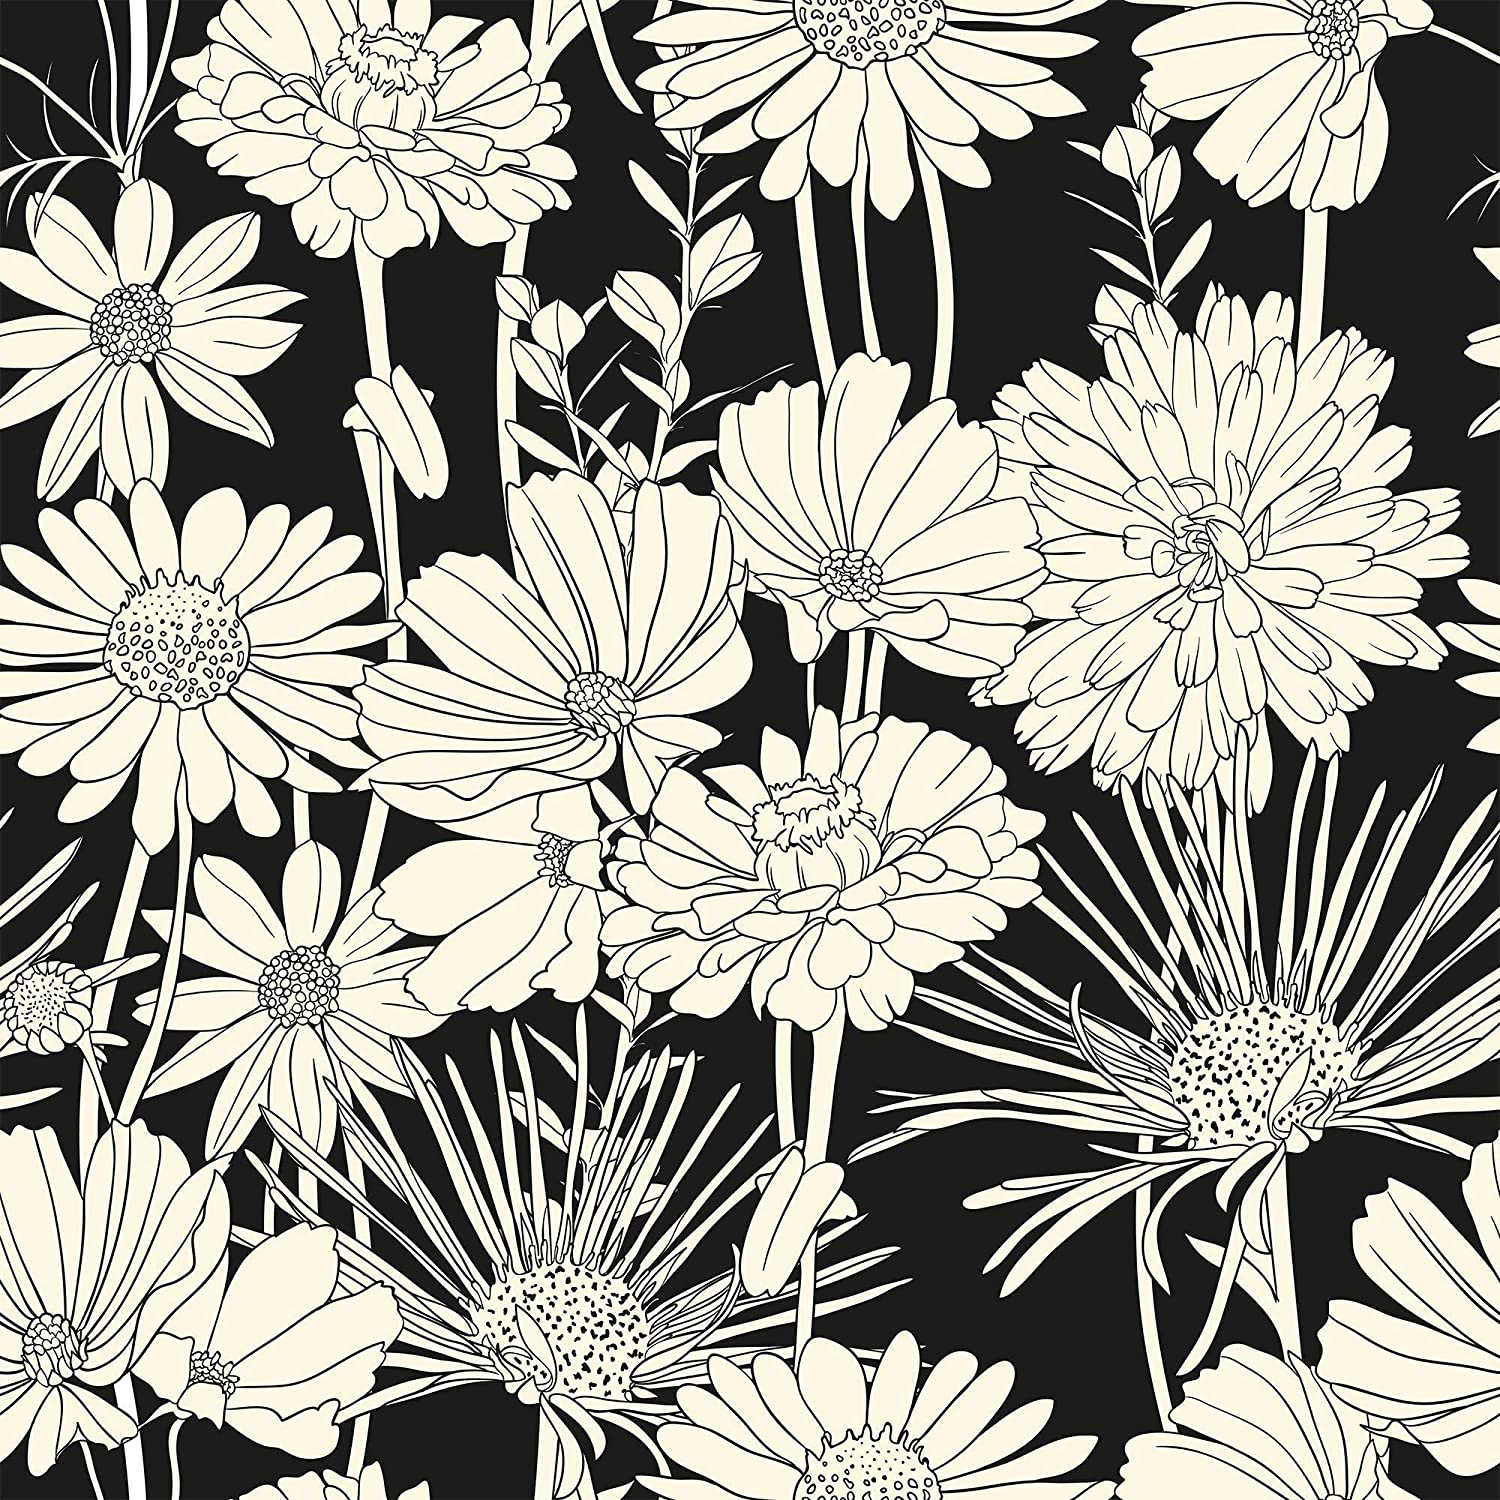 Wallsbyme Peel And Stick White And Black Hand Drawn Floral Fabric